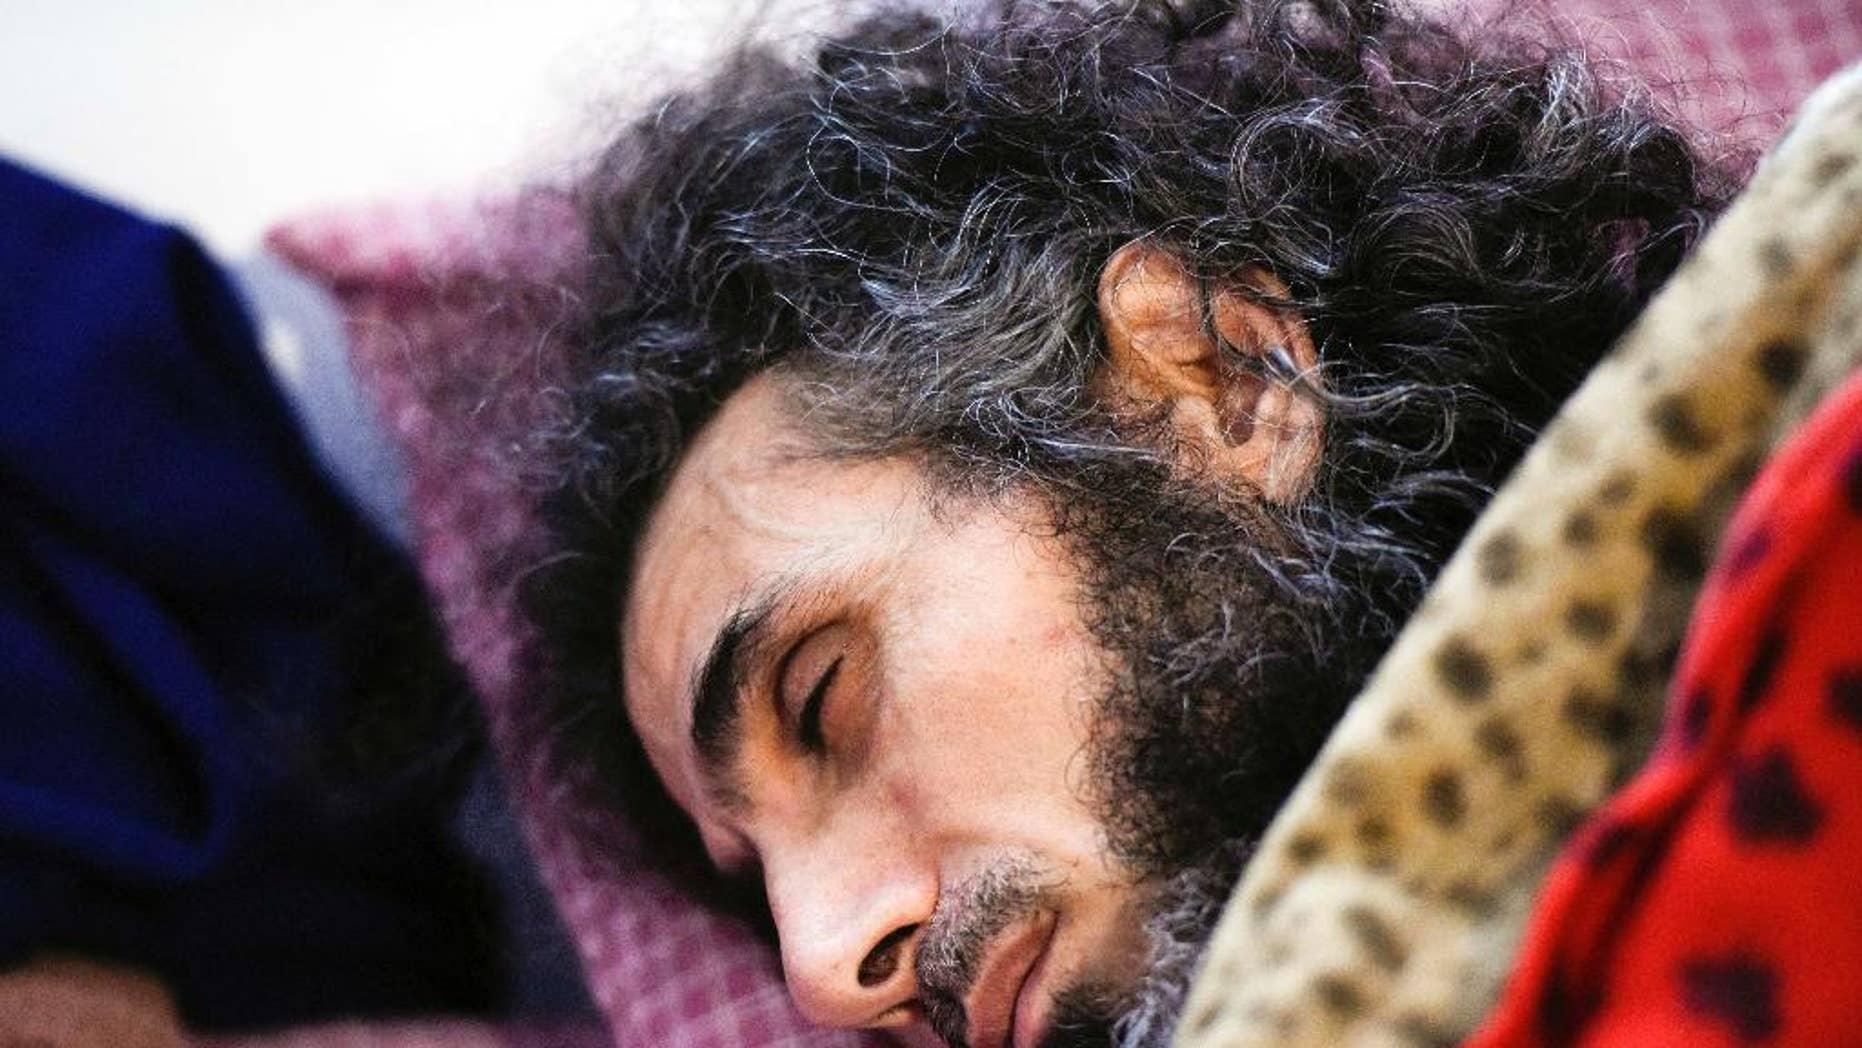 FILE - In this Sept. 9, 2016 file photo, Syrian native Abu Wa'el Dhiab rests in bed while conversing with his family via a laptop, in his apartment in Montevideo, Uruguay. Uruguay's president said on Wednesday, Sept. 21, that Dhiab demands exceed his government's capacity to deliver. (AP Photo/Matilde Campodonico, File)